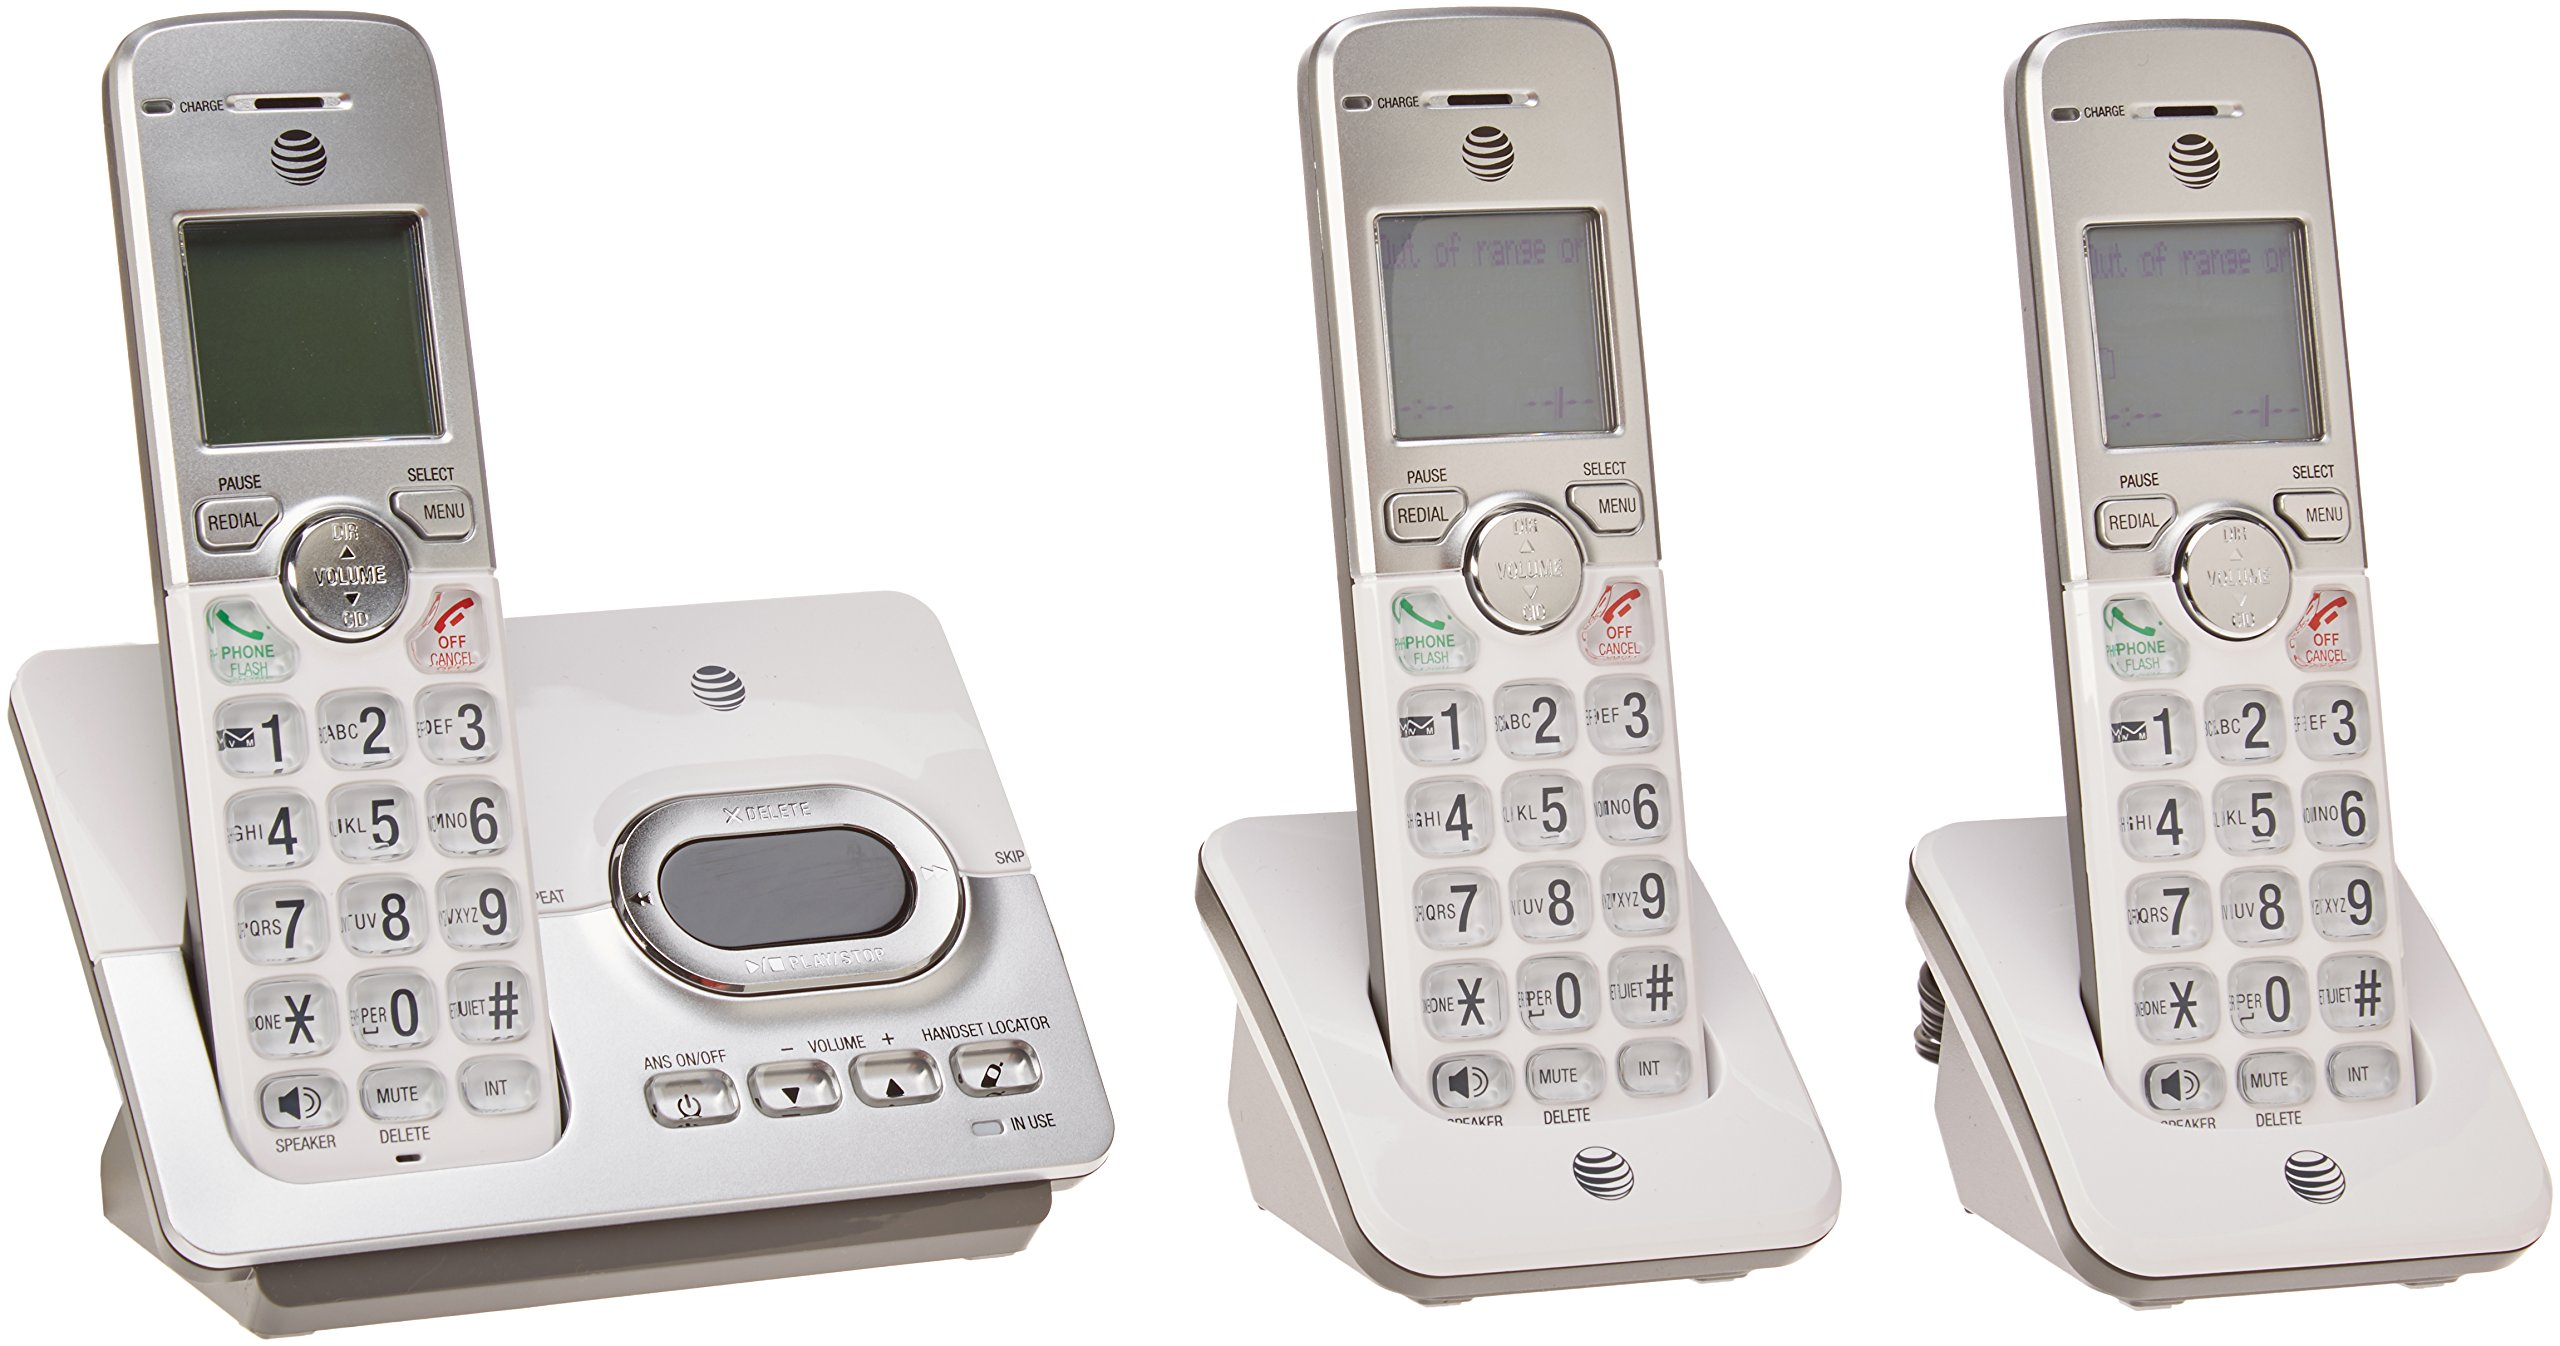 AT&T EL52303 3 Handset Cordless Answering System with Caller ID/Call Waiting